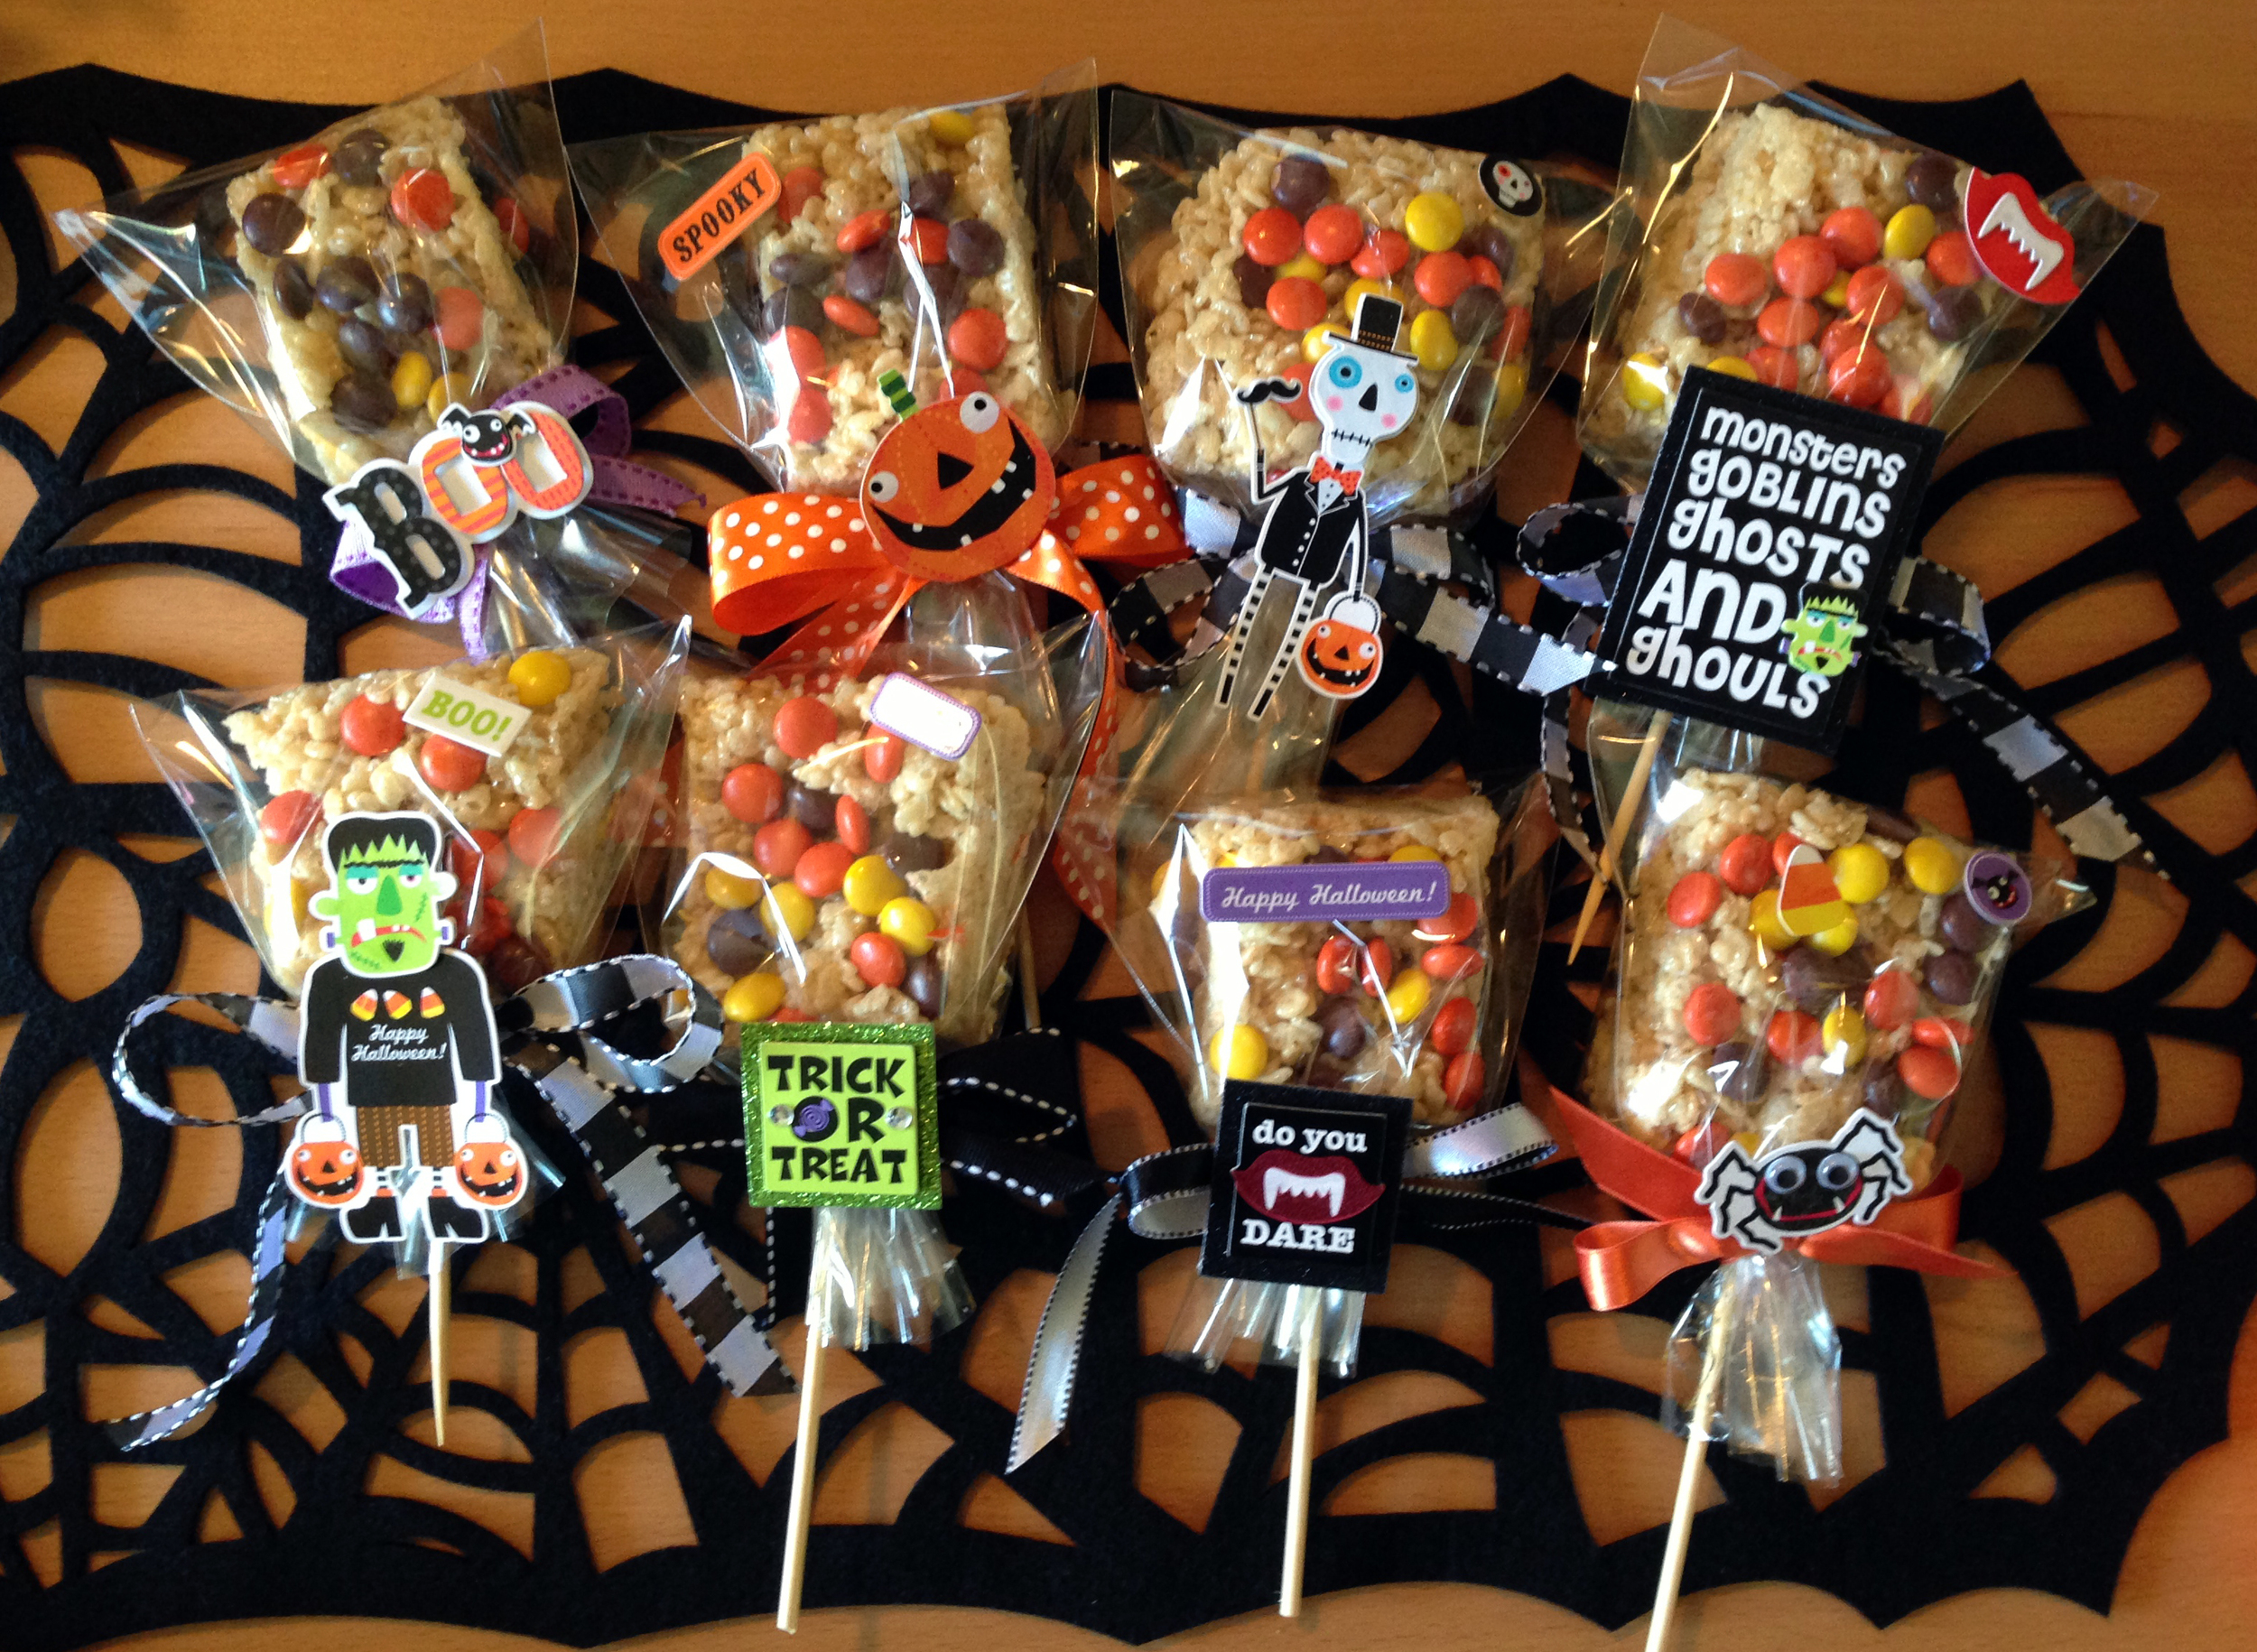 Rice Krispy treats with mambi soft spoken embellishment decorations. available at michaels. so cute!